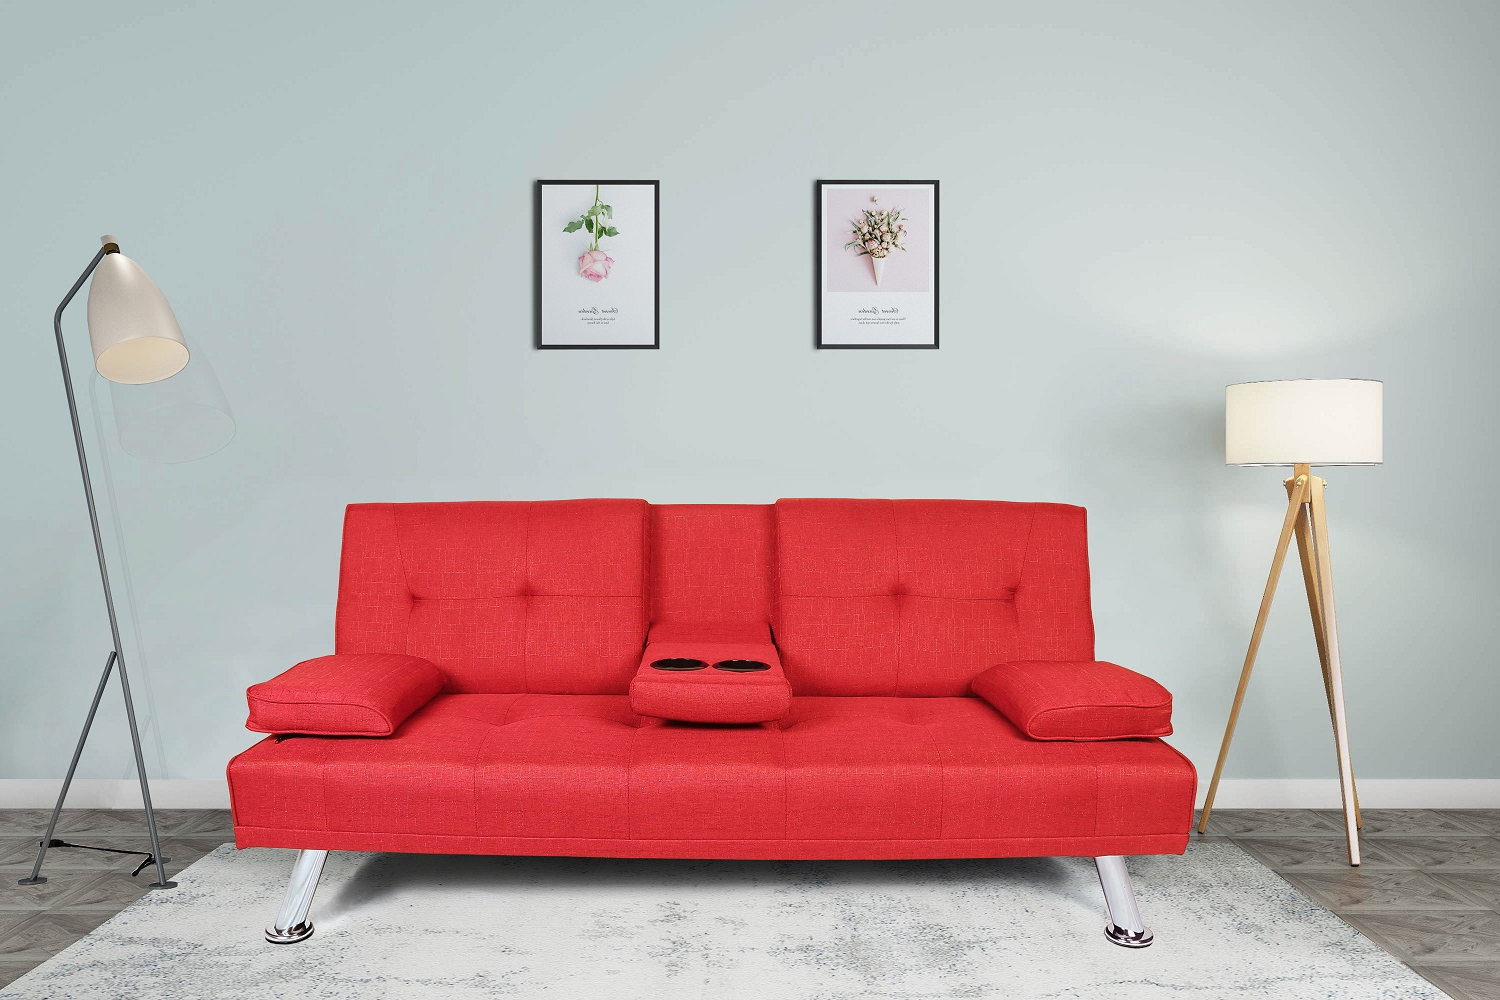 Most Recently Released Liberty Sectional Futon Sofas With Storage Regarding Futon Sofa Bed, Modern Twin Fabric Sofa Sleeper Bed With (View 2 of 25)